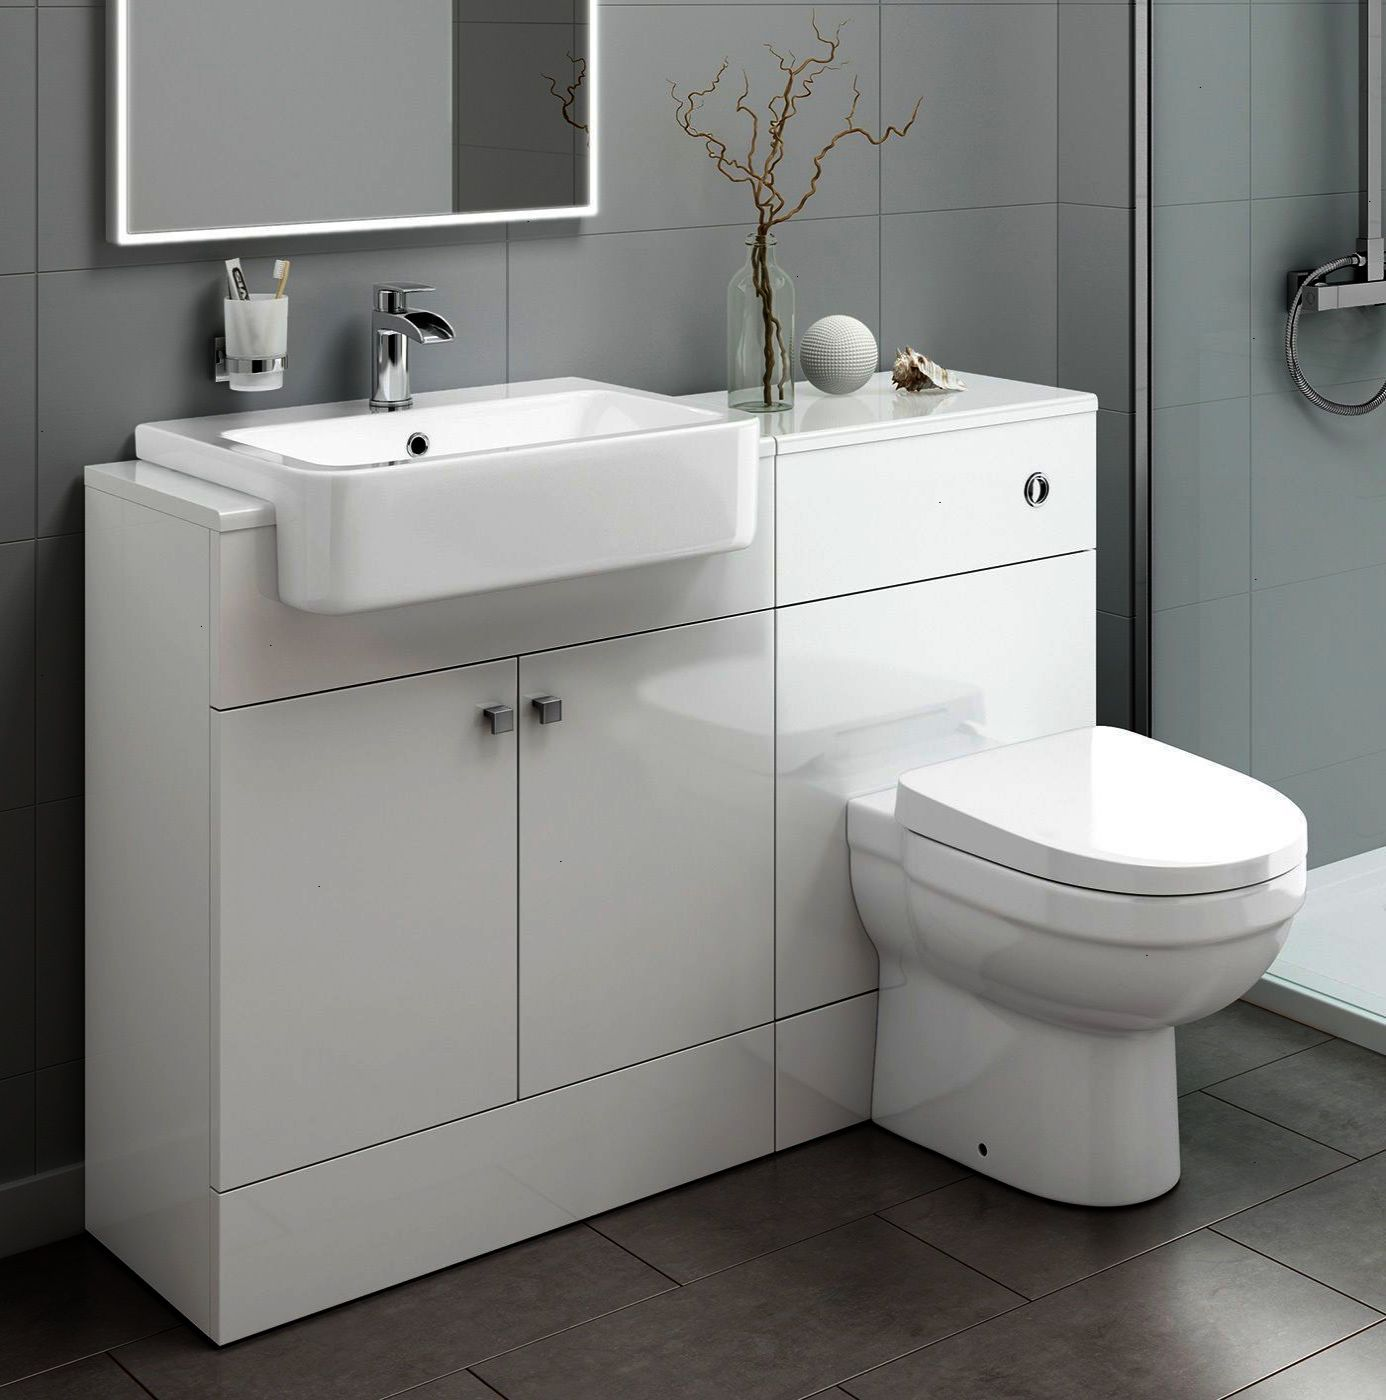 This Toilet And Sink Vanity Storage Unit Features A Built